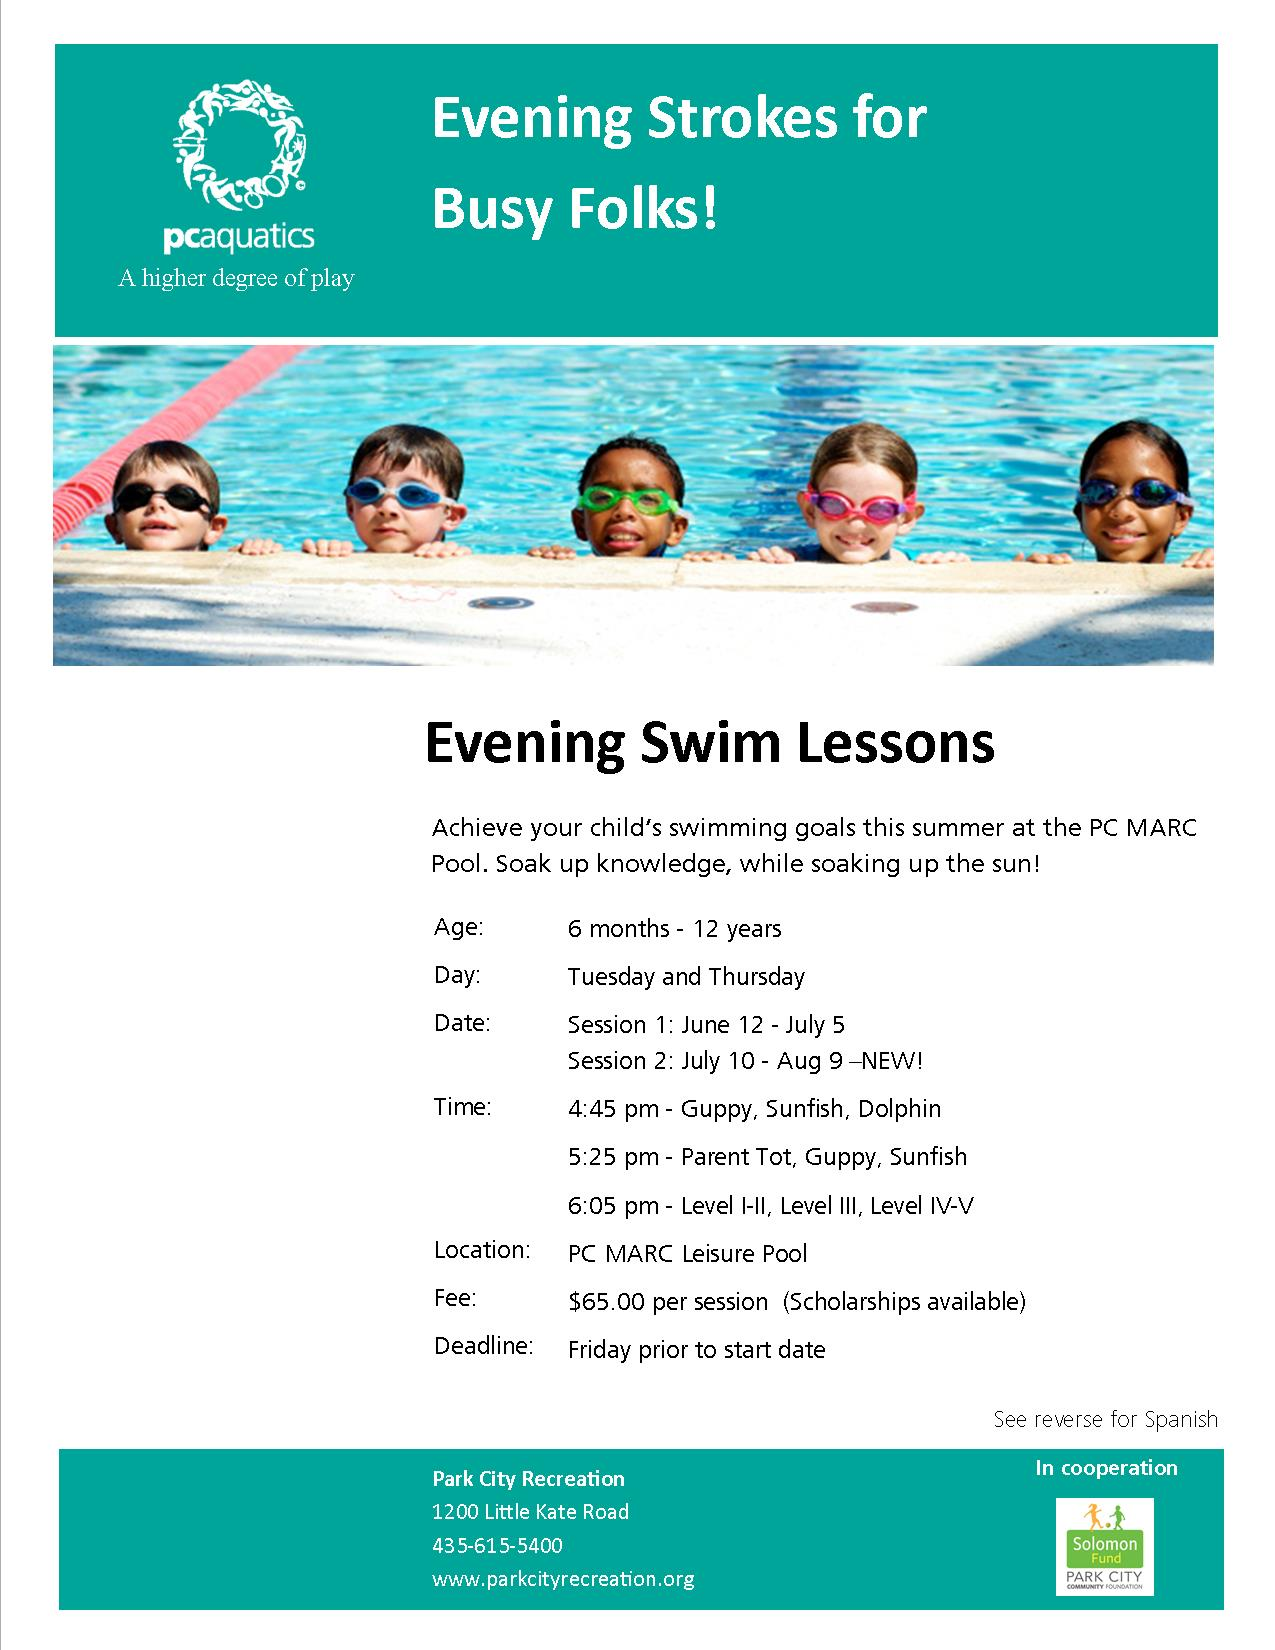 Evening Swim Lessons 2018 flyer